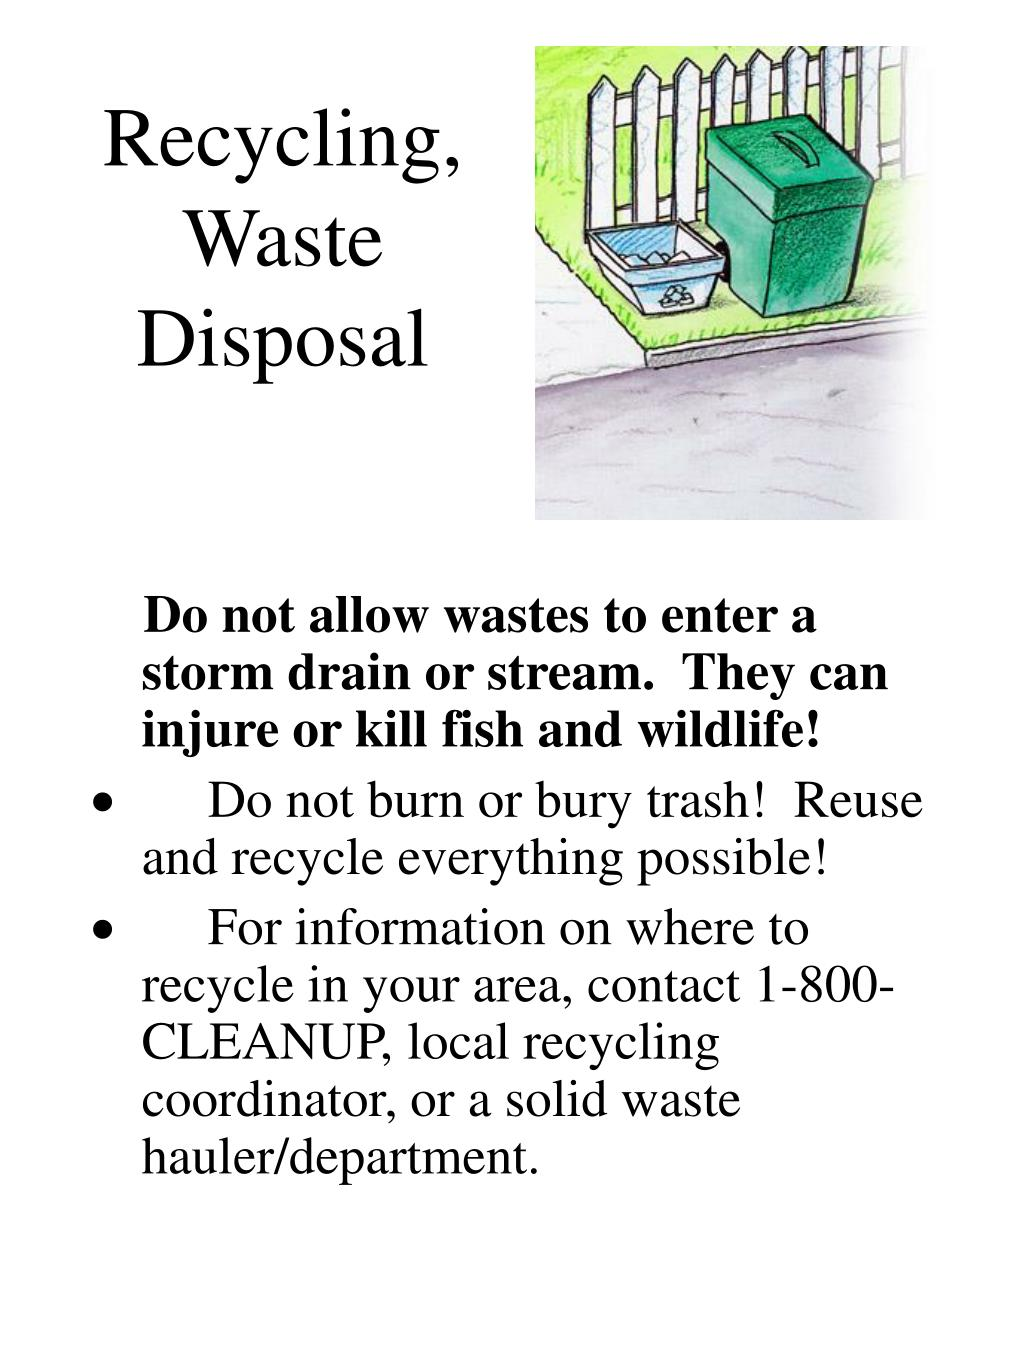 Recycling, Waste Disposal